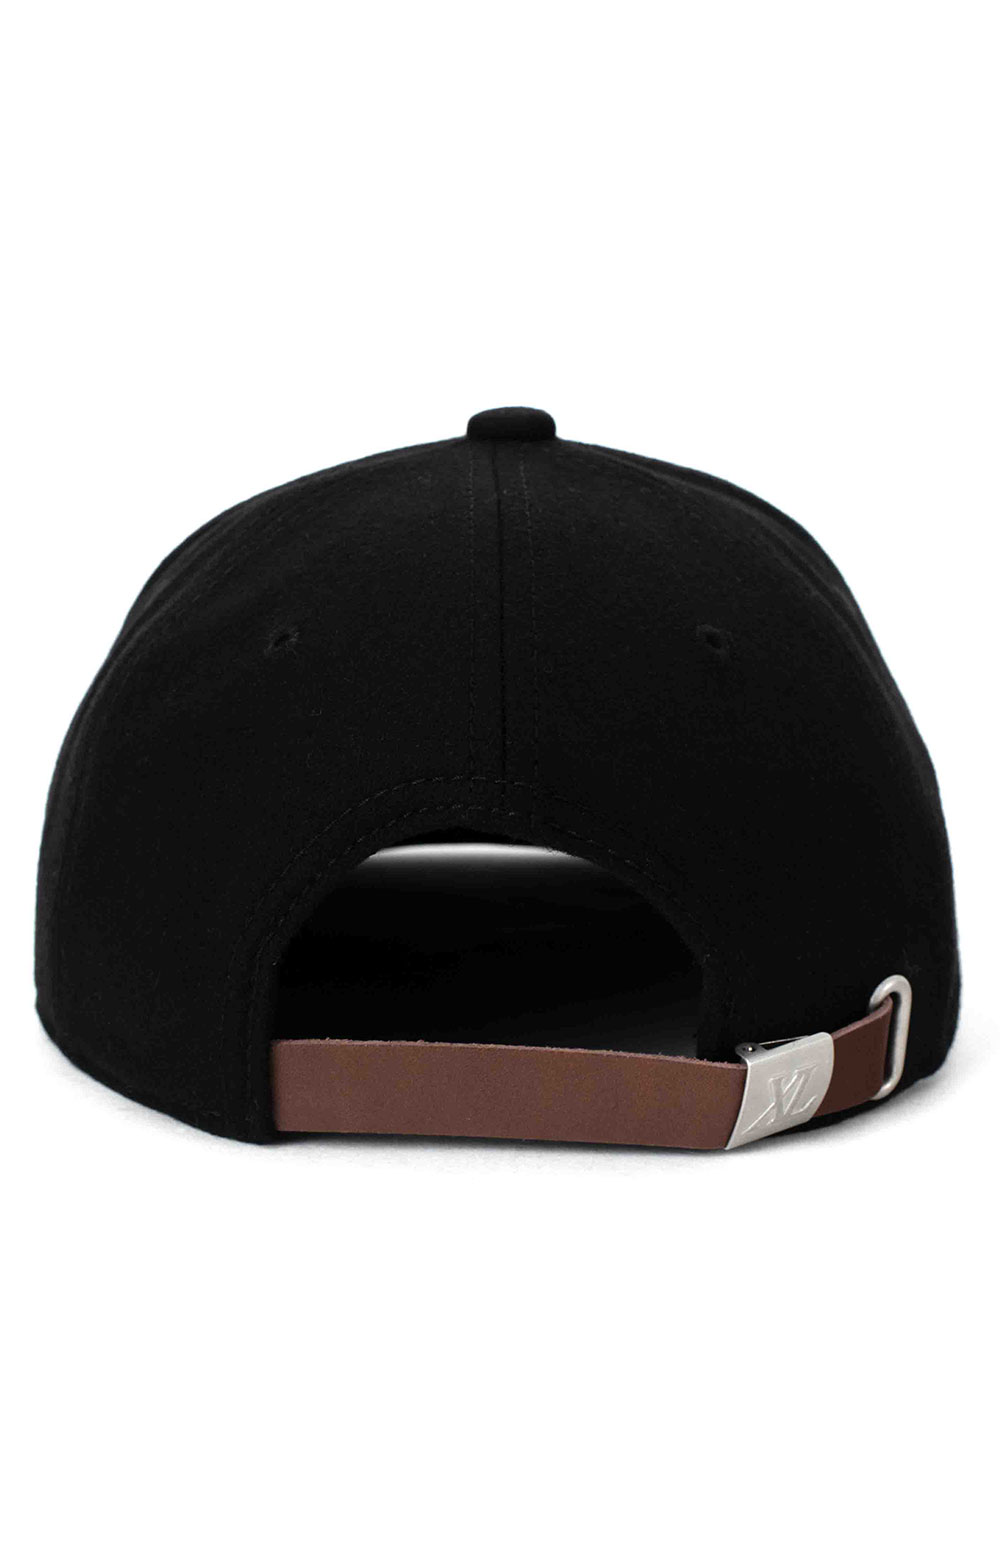 Patched Wool Cap - Black 3